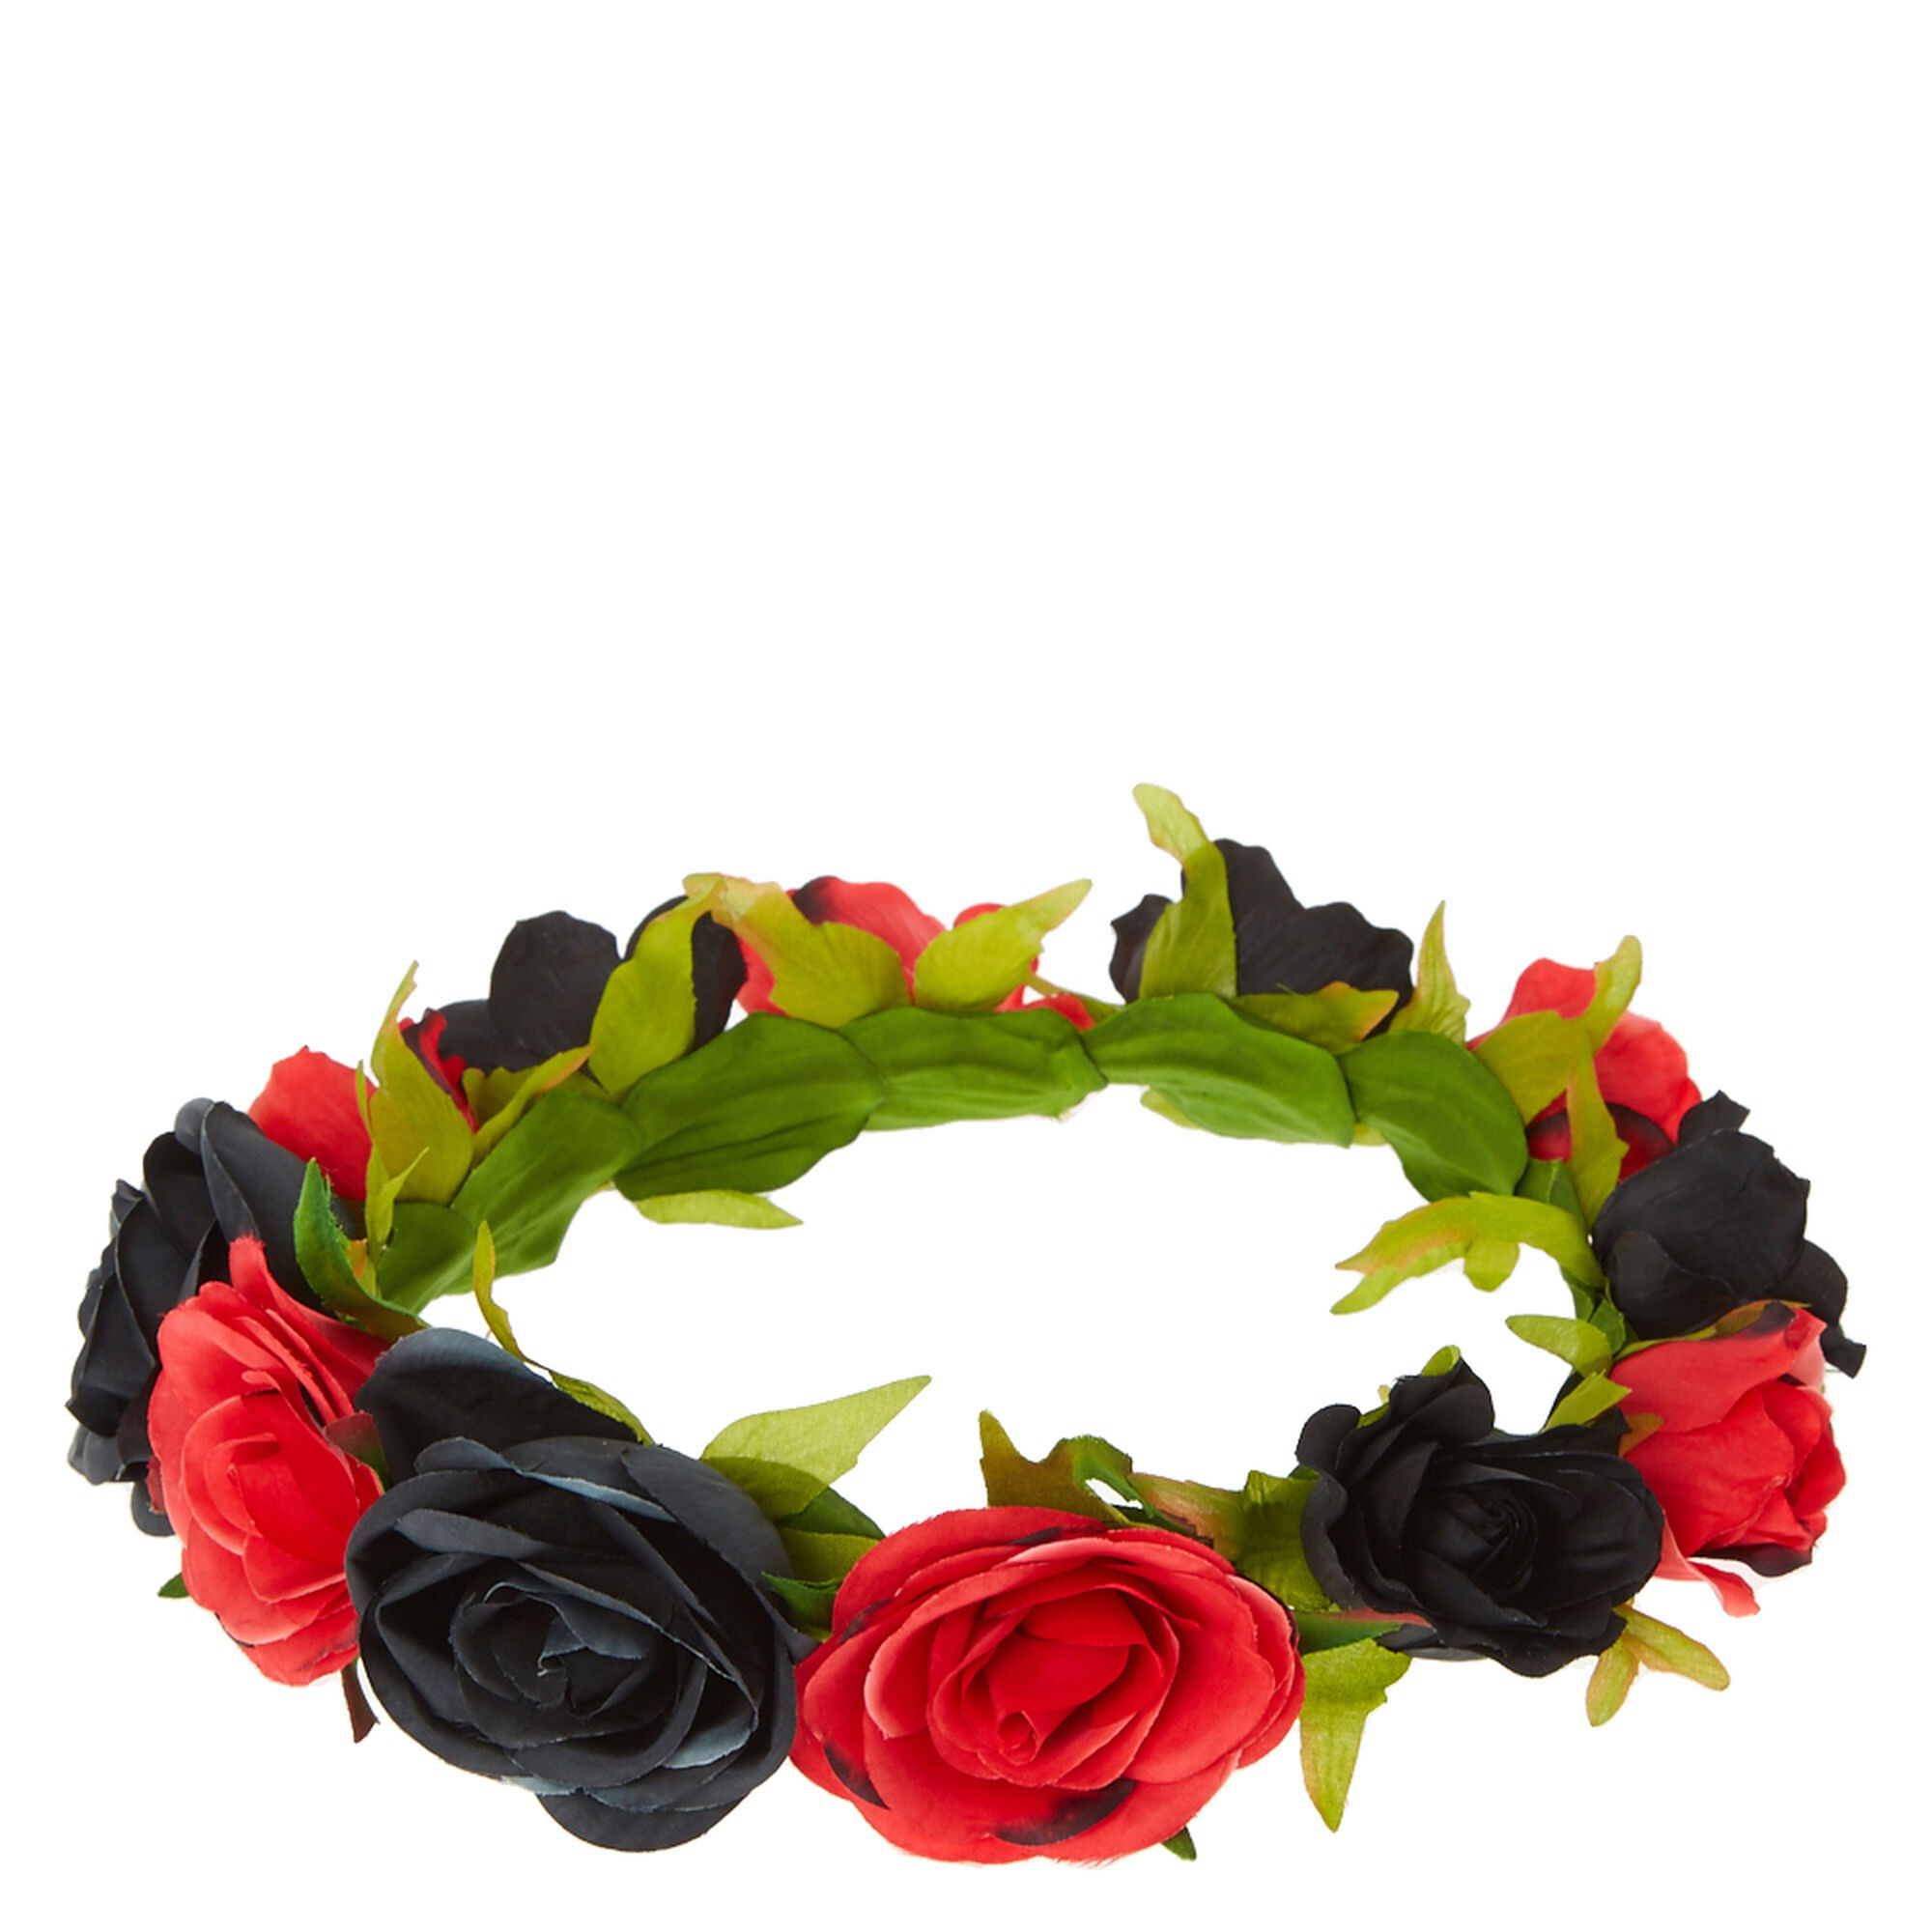 Black and red rose flower crown claires black and red rose flower crown izmirmasajfo